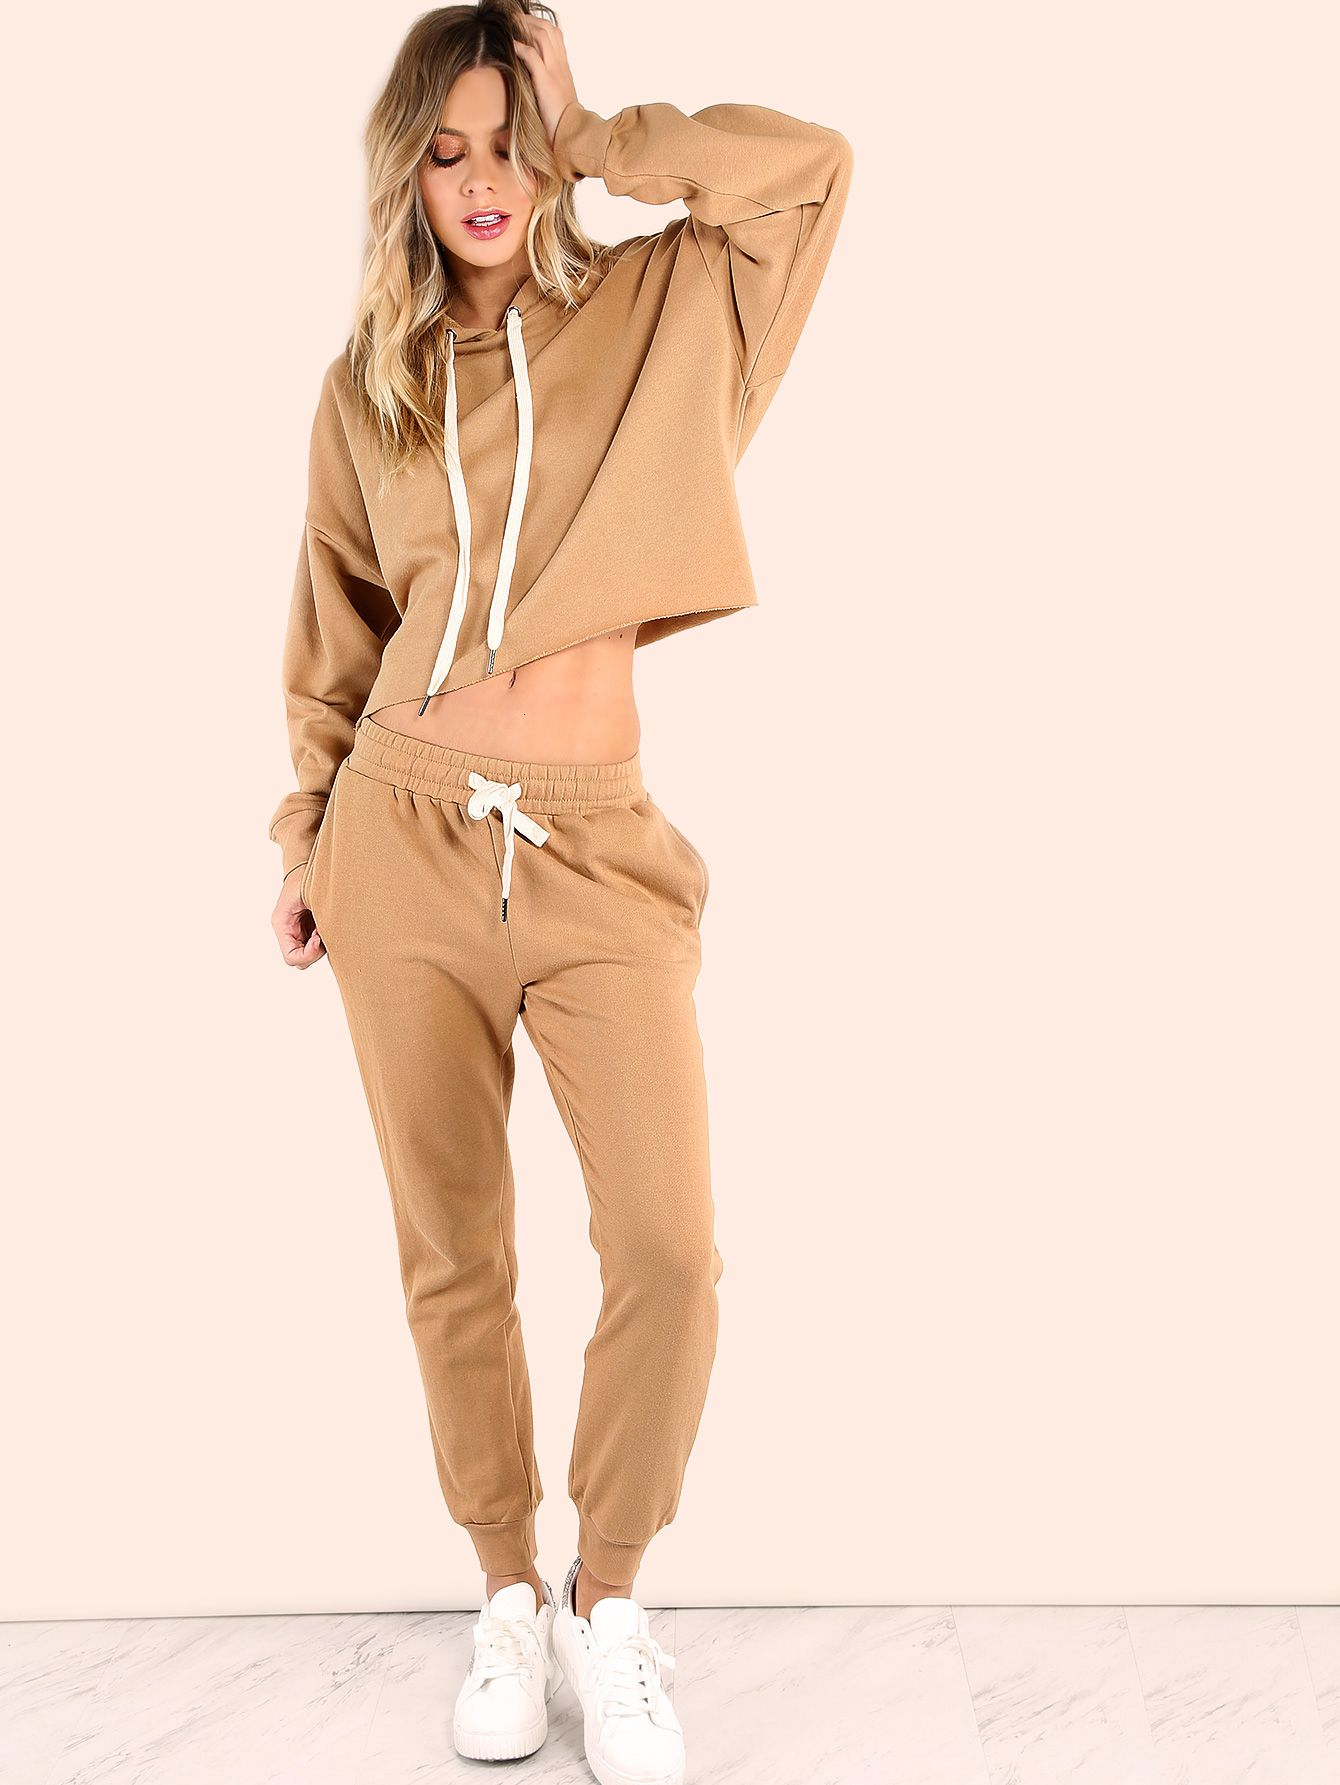 80c589ad8069 Shop Cropped Batwing Sweatpants Matching Set CAMEL online. SheIn offers  Cropped Batwing Sweatpants Matching Set CAMEL & more to fit your  fashionable needs.